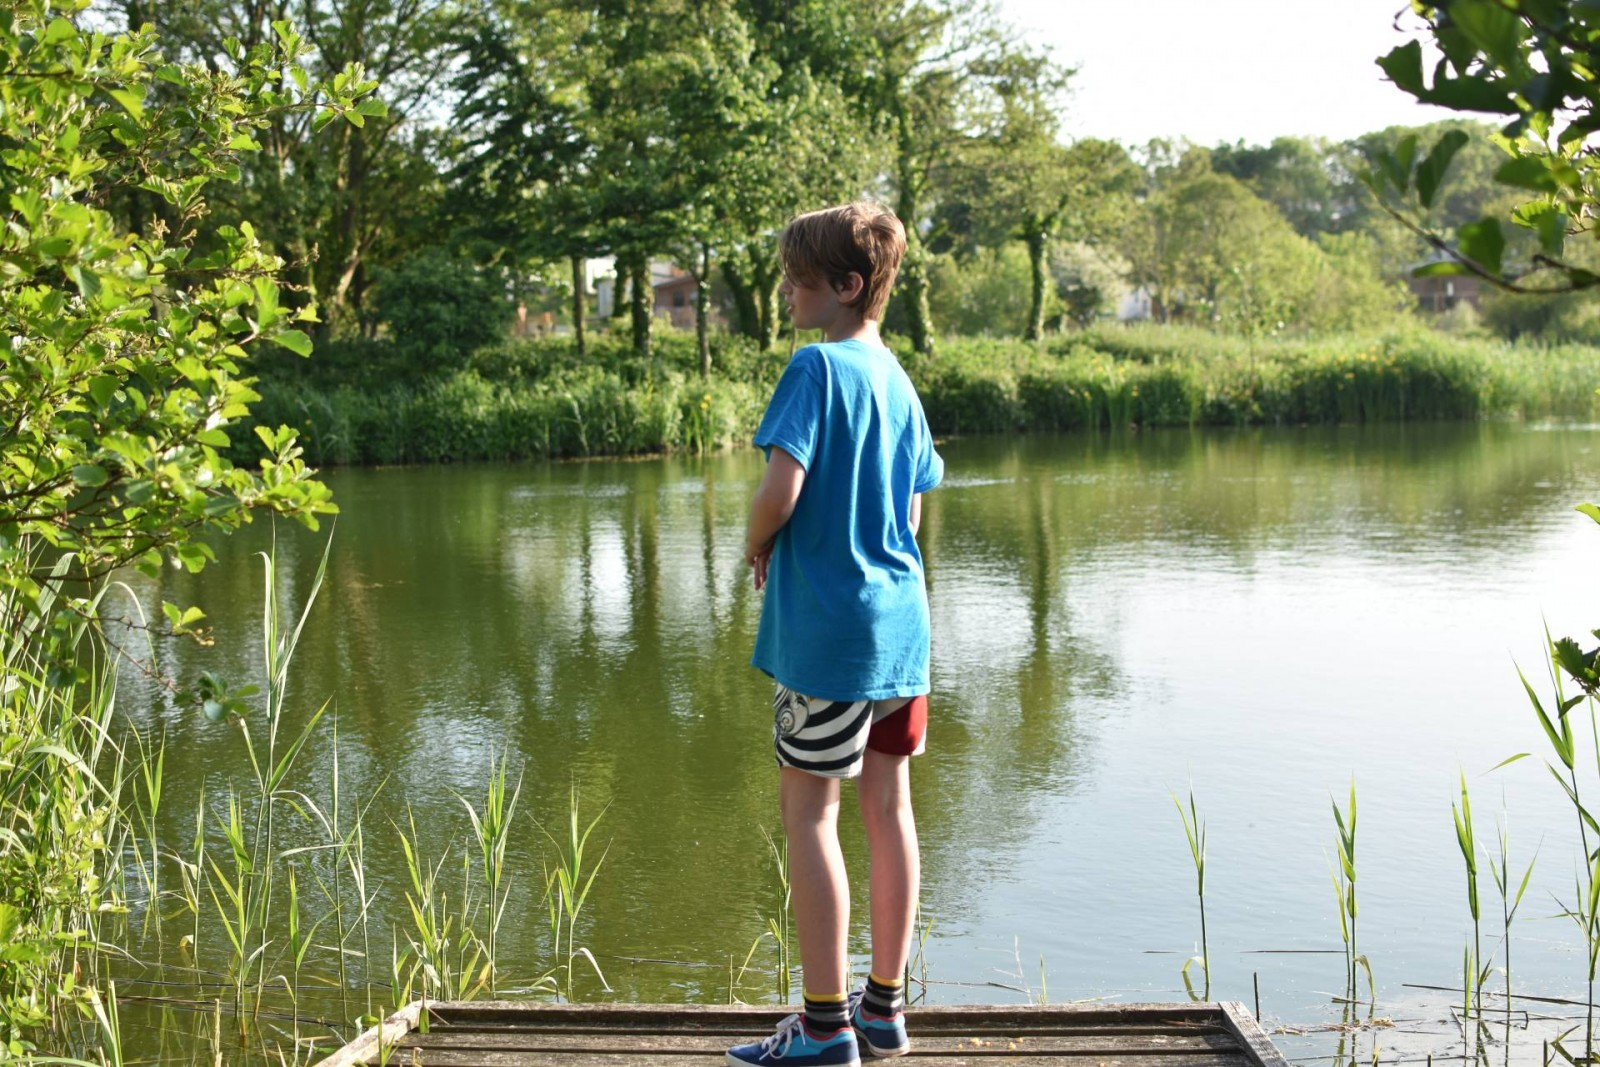 there's lots to do at Trevella Park while still having a relaxing time with the family, the fishing lake is perfect for early evening walks listening to the wildlife